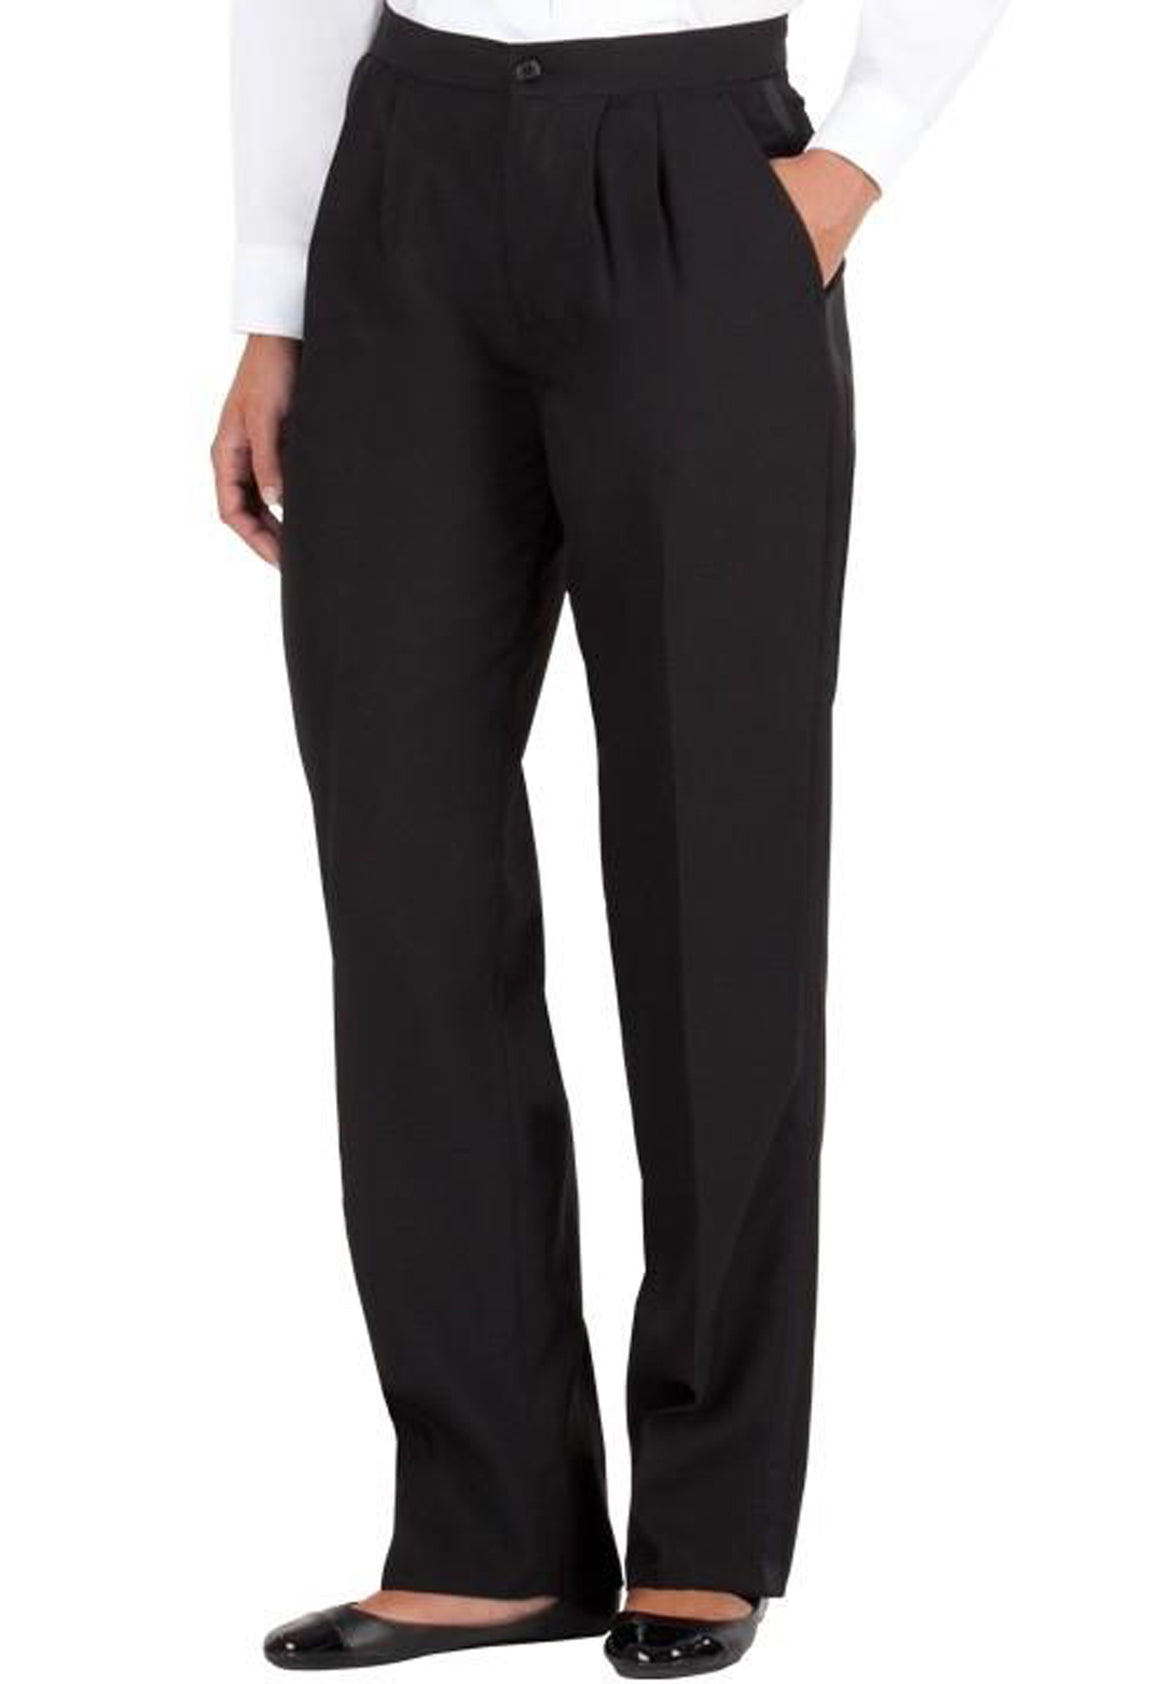 Women's Black, Pleated Front, Tuxedo Pants with Satin Stripe